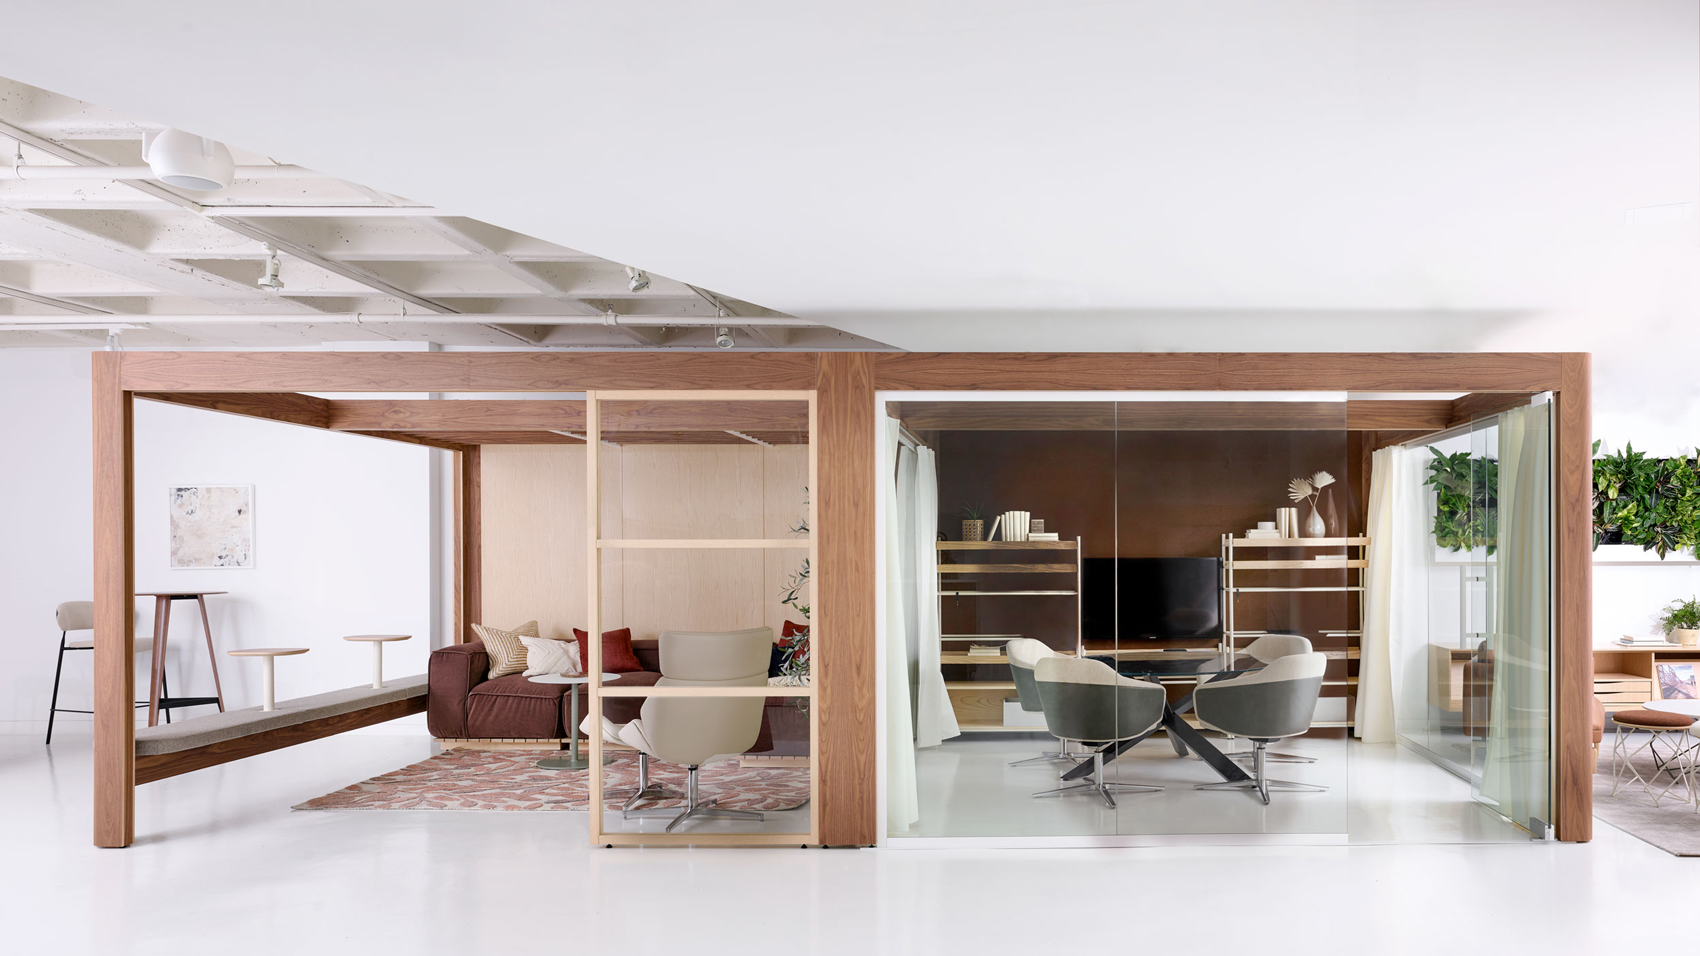 Soft architecture work areas within larger open workspace